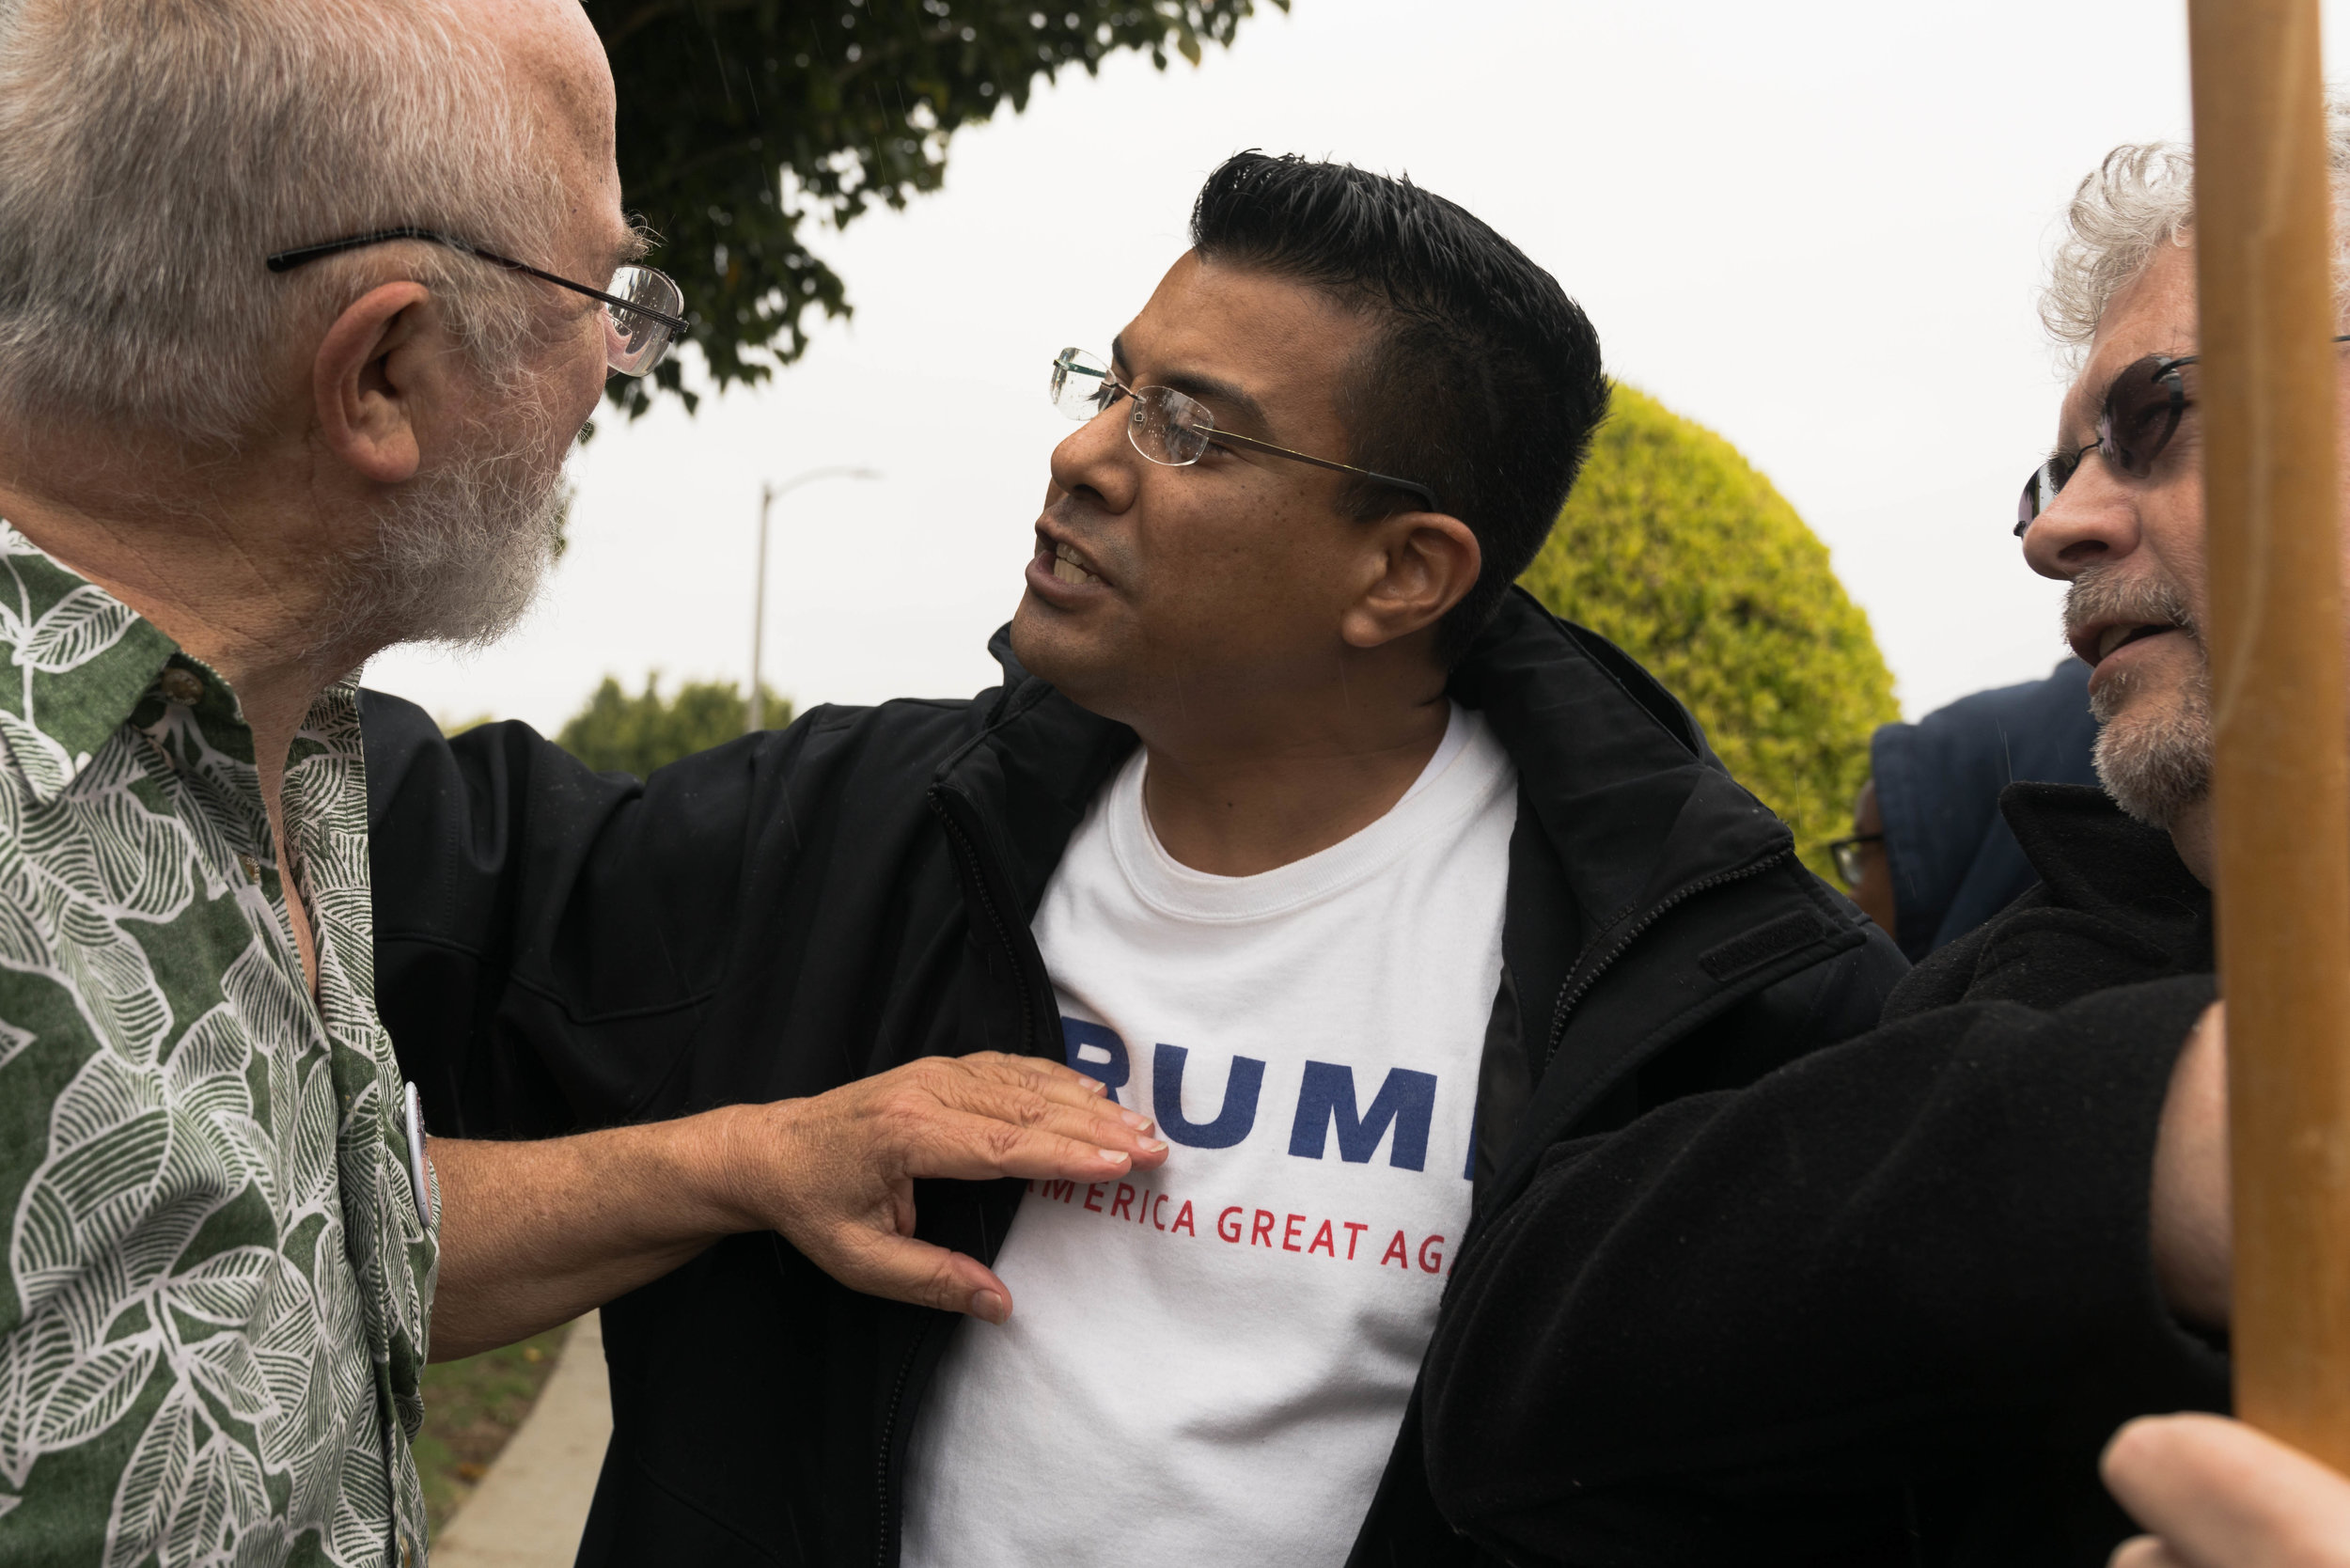 """Danny Rodriguez (center), a Trump supporter, drove from Fontana to confront the protesters in Santa Monica, California on Tuesday, March 13, 2018. """"I'm here to try to change minds,"""" he said. """"I'm here by myself to take on everybody. If this country falls, the whole world falls. Real democracy comes from borders."""" (Helena Sung / Corsair Photo)"""